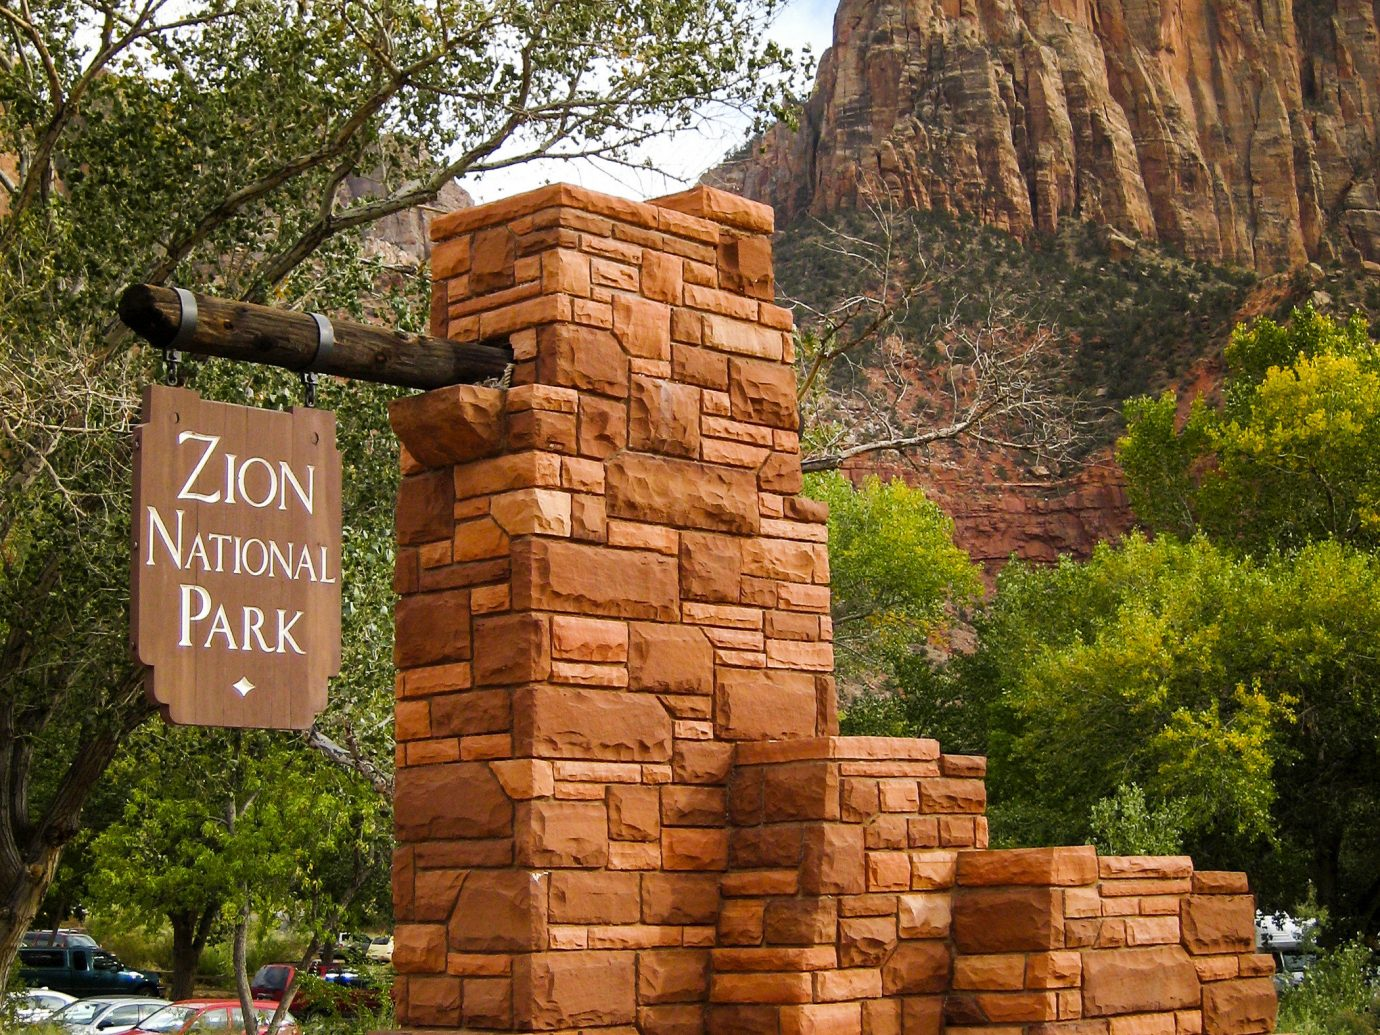 National Parks Outdoors + Adventure Trip Ideas outdoor tree wall rock ancient history monument material arch stone